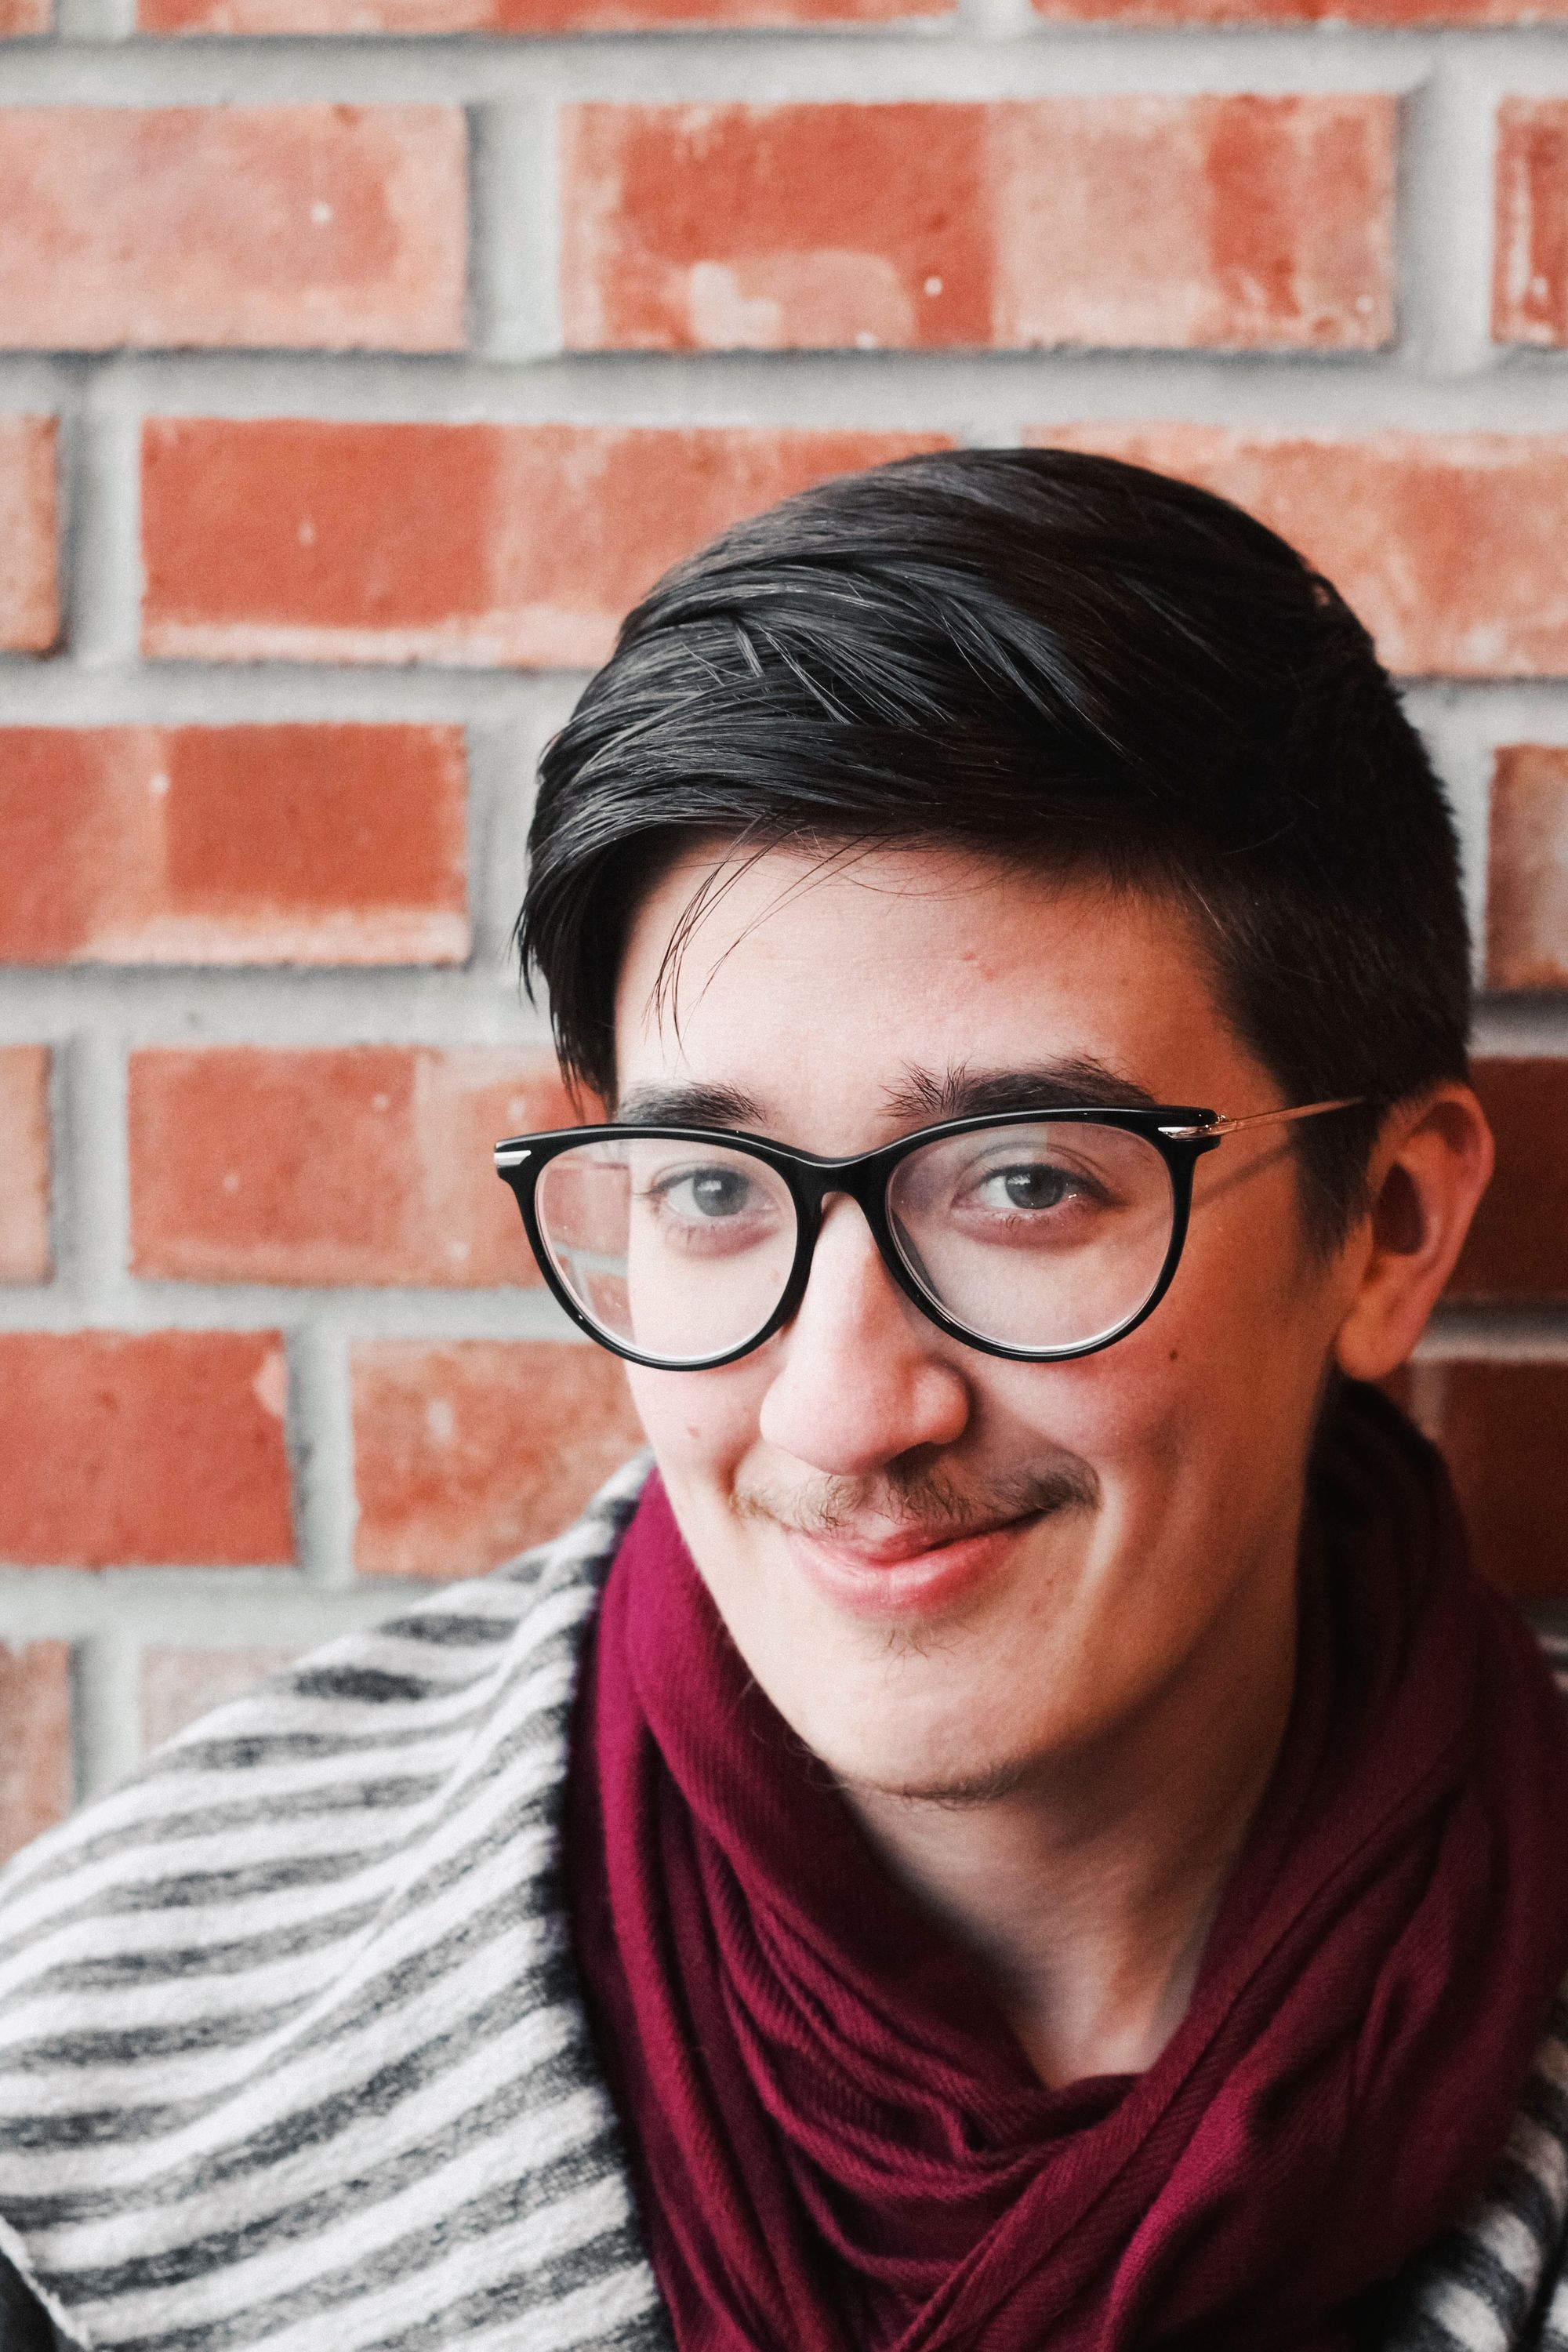 Nino Cipri is a winsome person with short dark hair, glasses, and a mischievous smile. They have a trim moustache and beard. In this image, they're standing next to a brick wall, wearing a black-and-grey striped top with a deep red scarf.